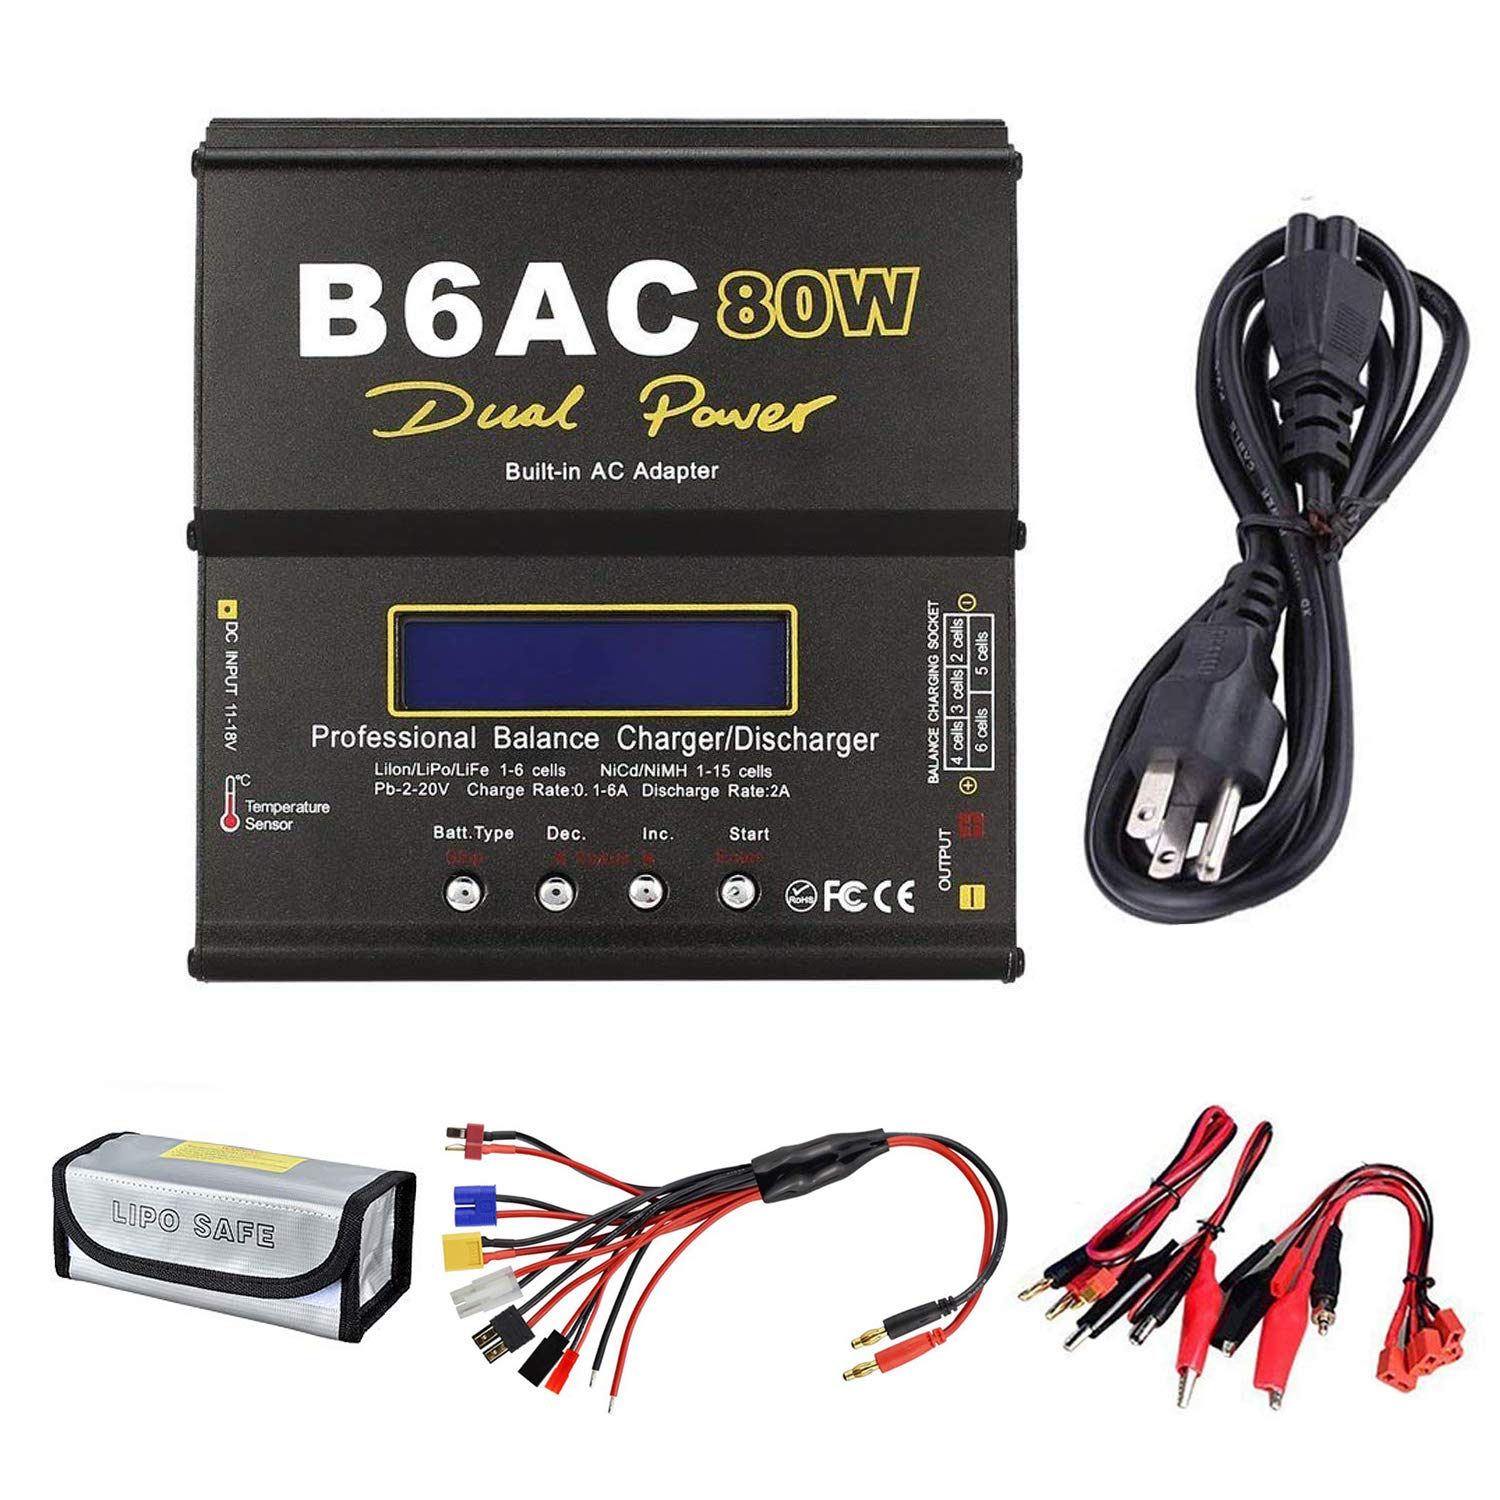 Skytoy Lipo Battery Balance Charger Discharger 1S-6S Digital Battery Pack Charger with Power Supply for NiMH/NiCD/Li-PO/Li-Fe Packs RC Hobby Battery Charger w/Tamiya/JST/EC3/HiTec/Deans Connectors